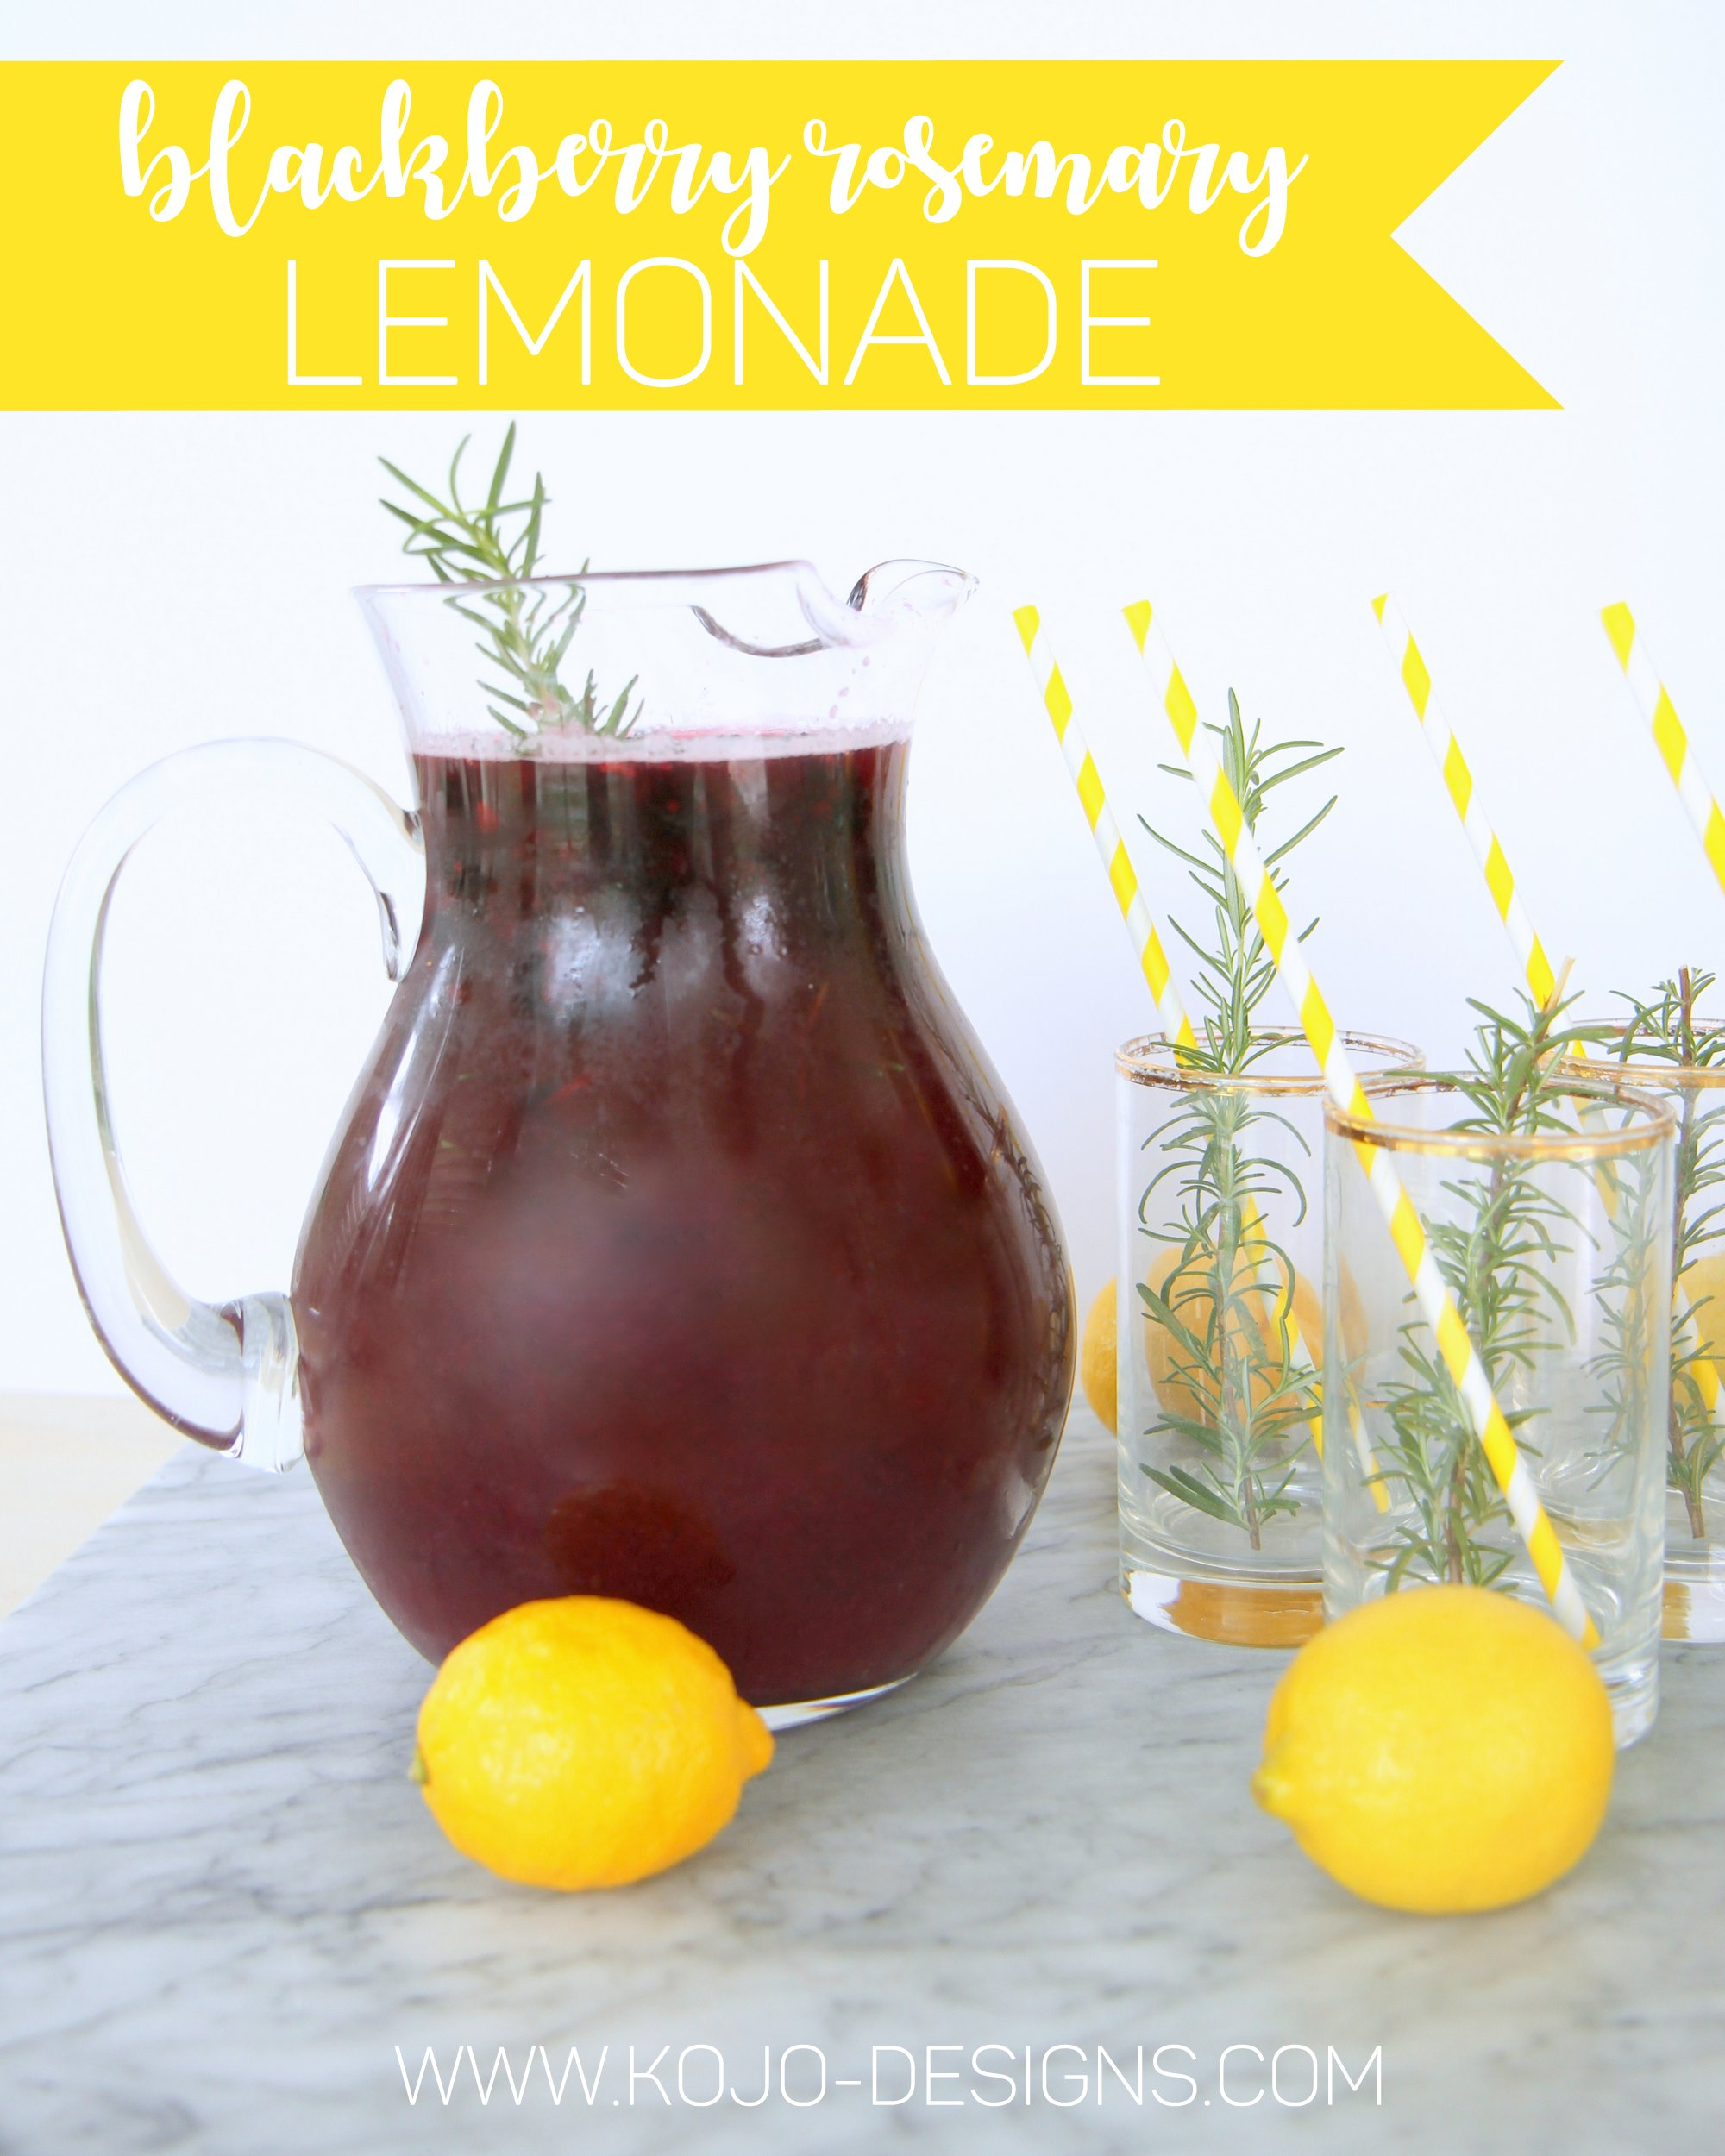 sparkling blackberry rosemary lemonade recipe (the perfect addition to brunch, or to dinner on the patio!)